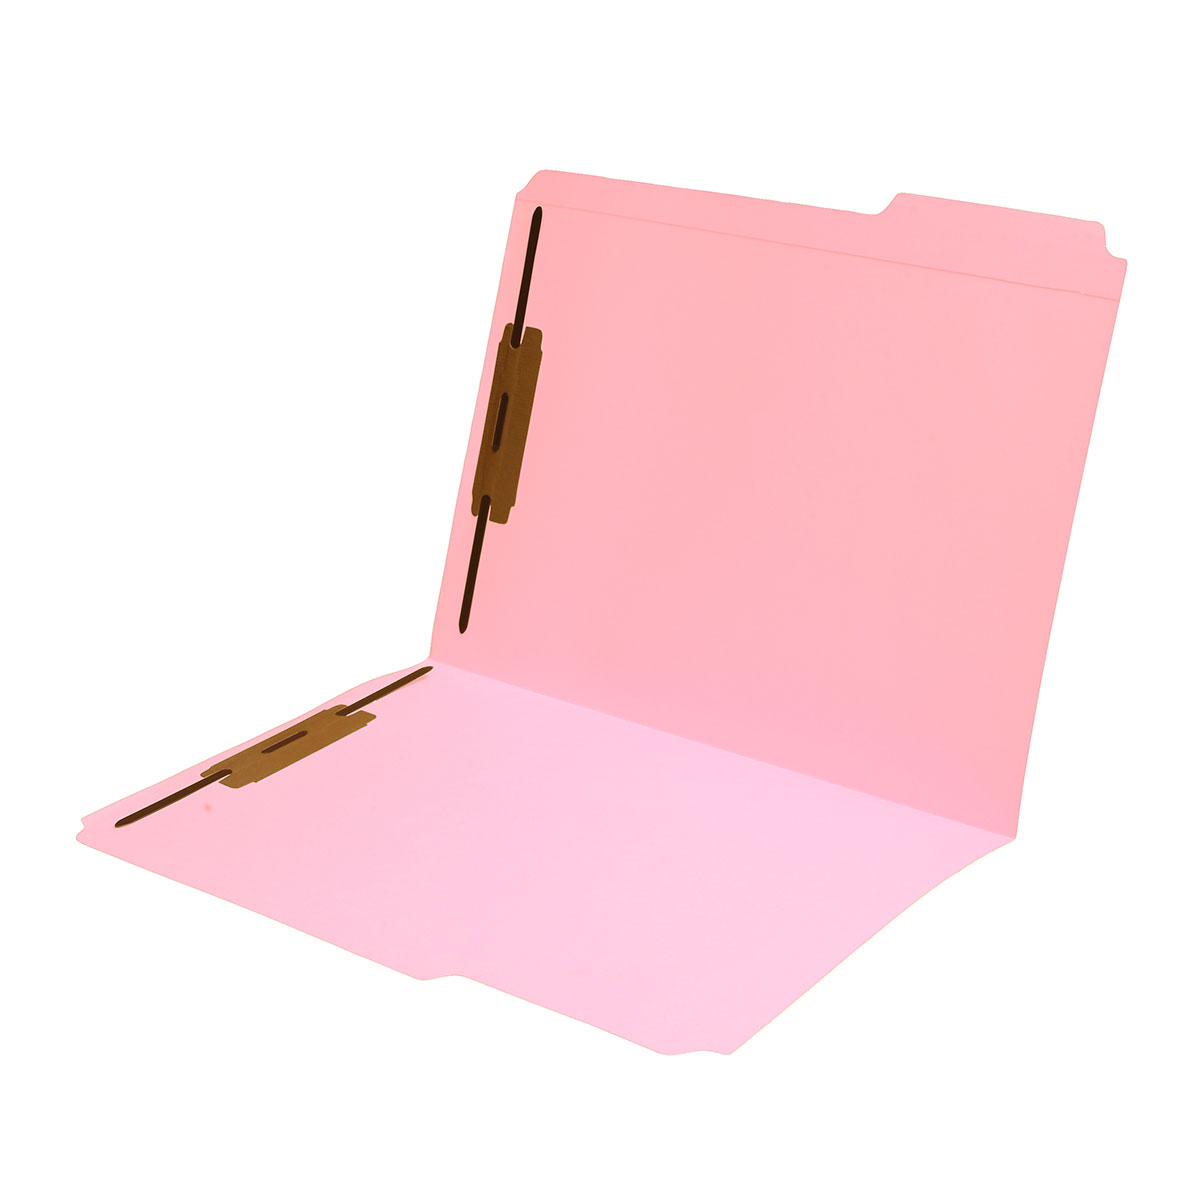 S-9042-PNK - 11 pt Pink Folders, 1/3 Cut Reinforced Top Tab - Assorted, Letter Size, Fastener Pos #1 and #3 (Box of 50)